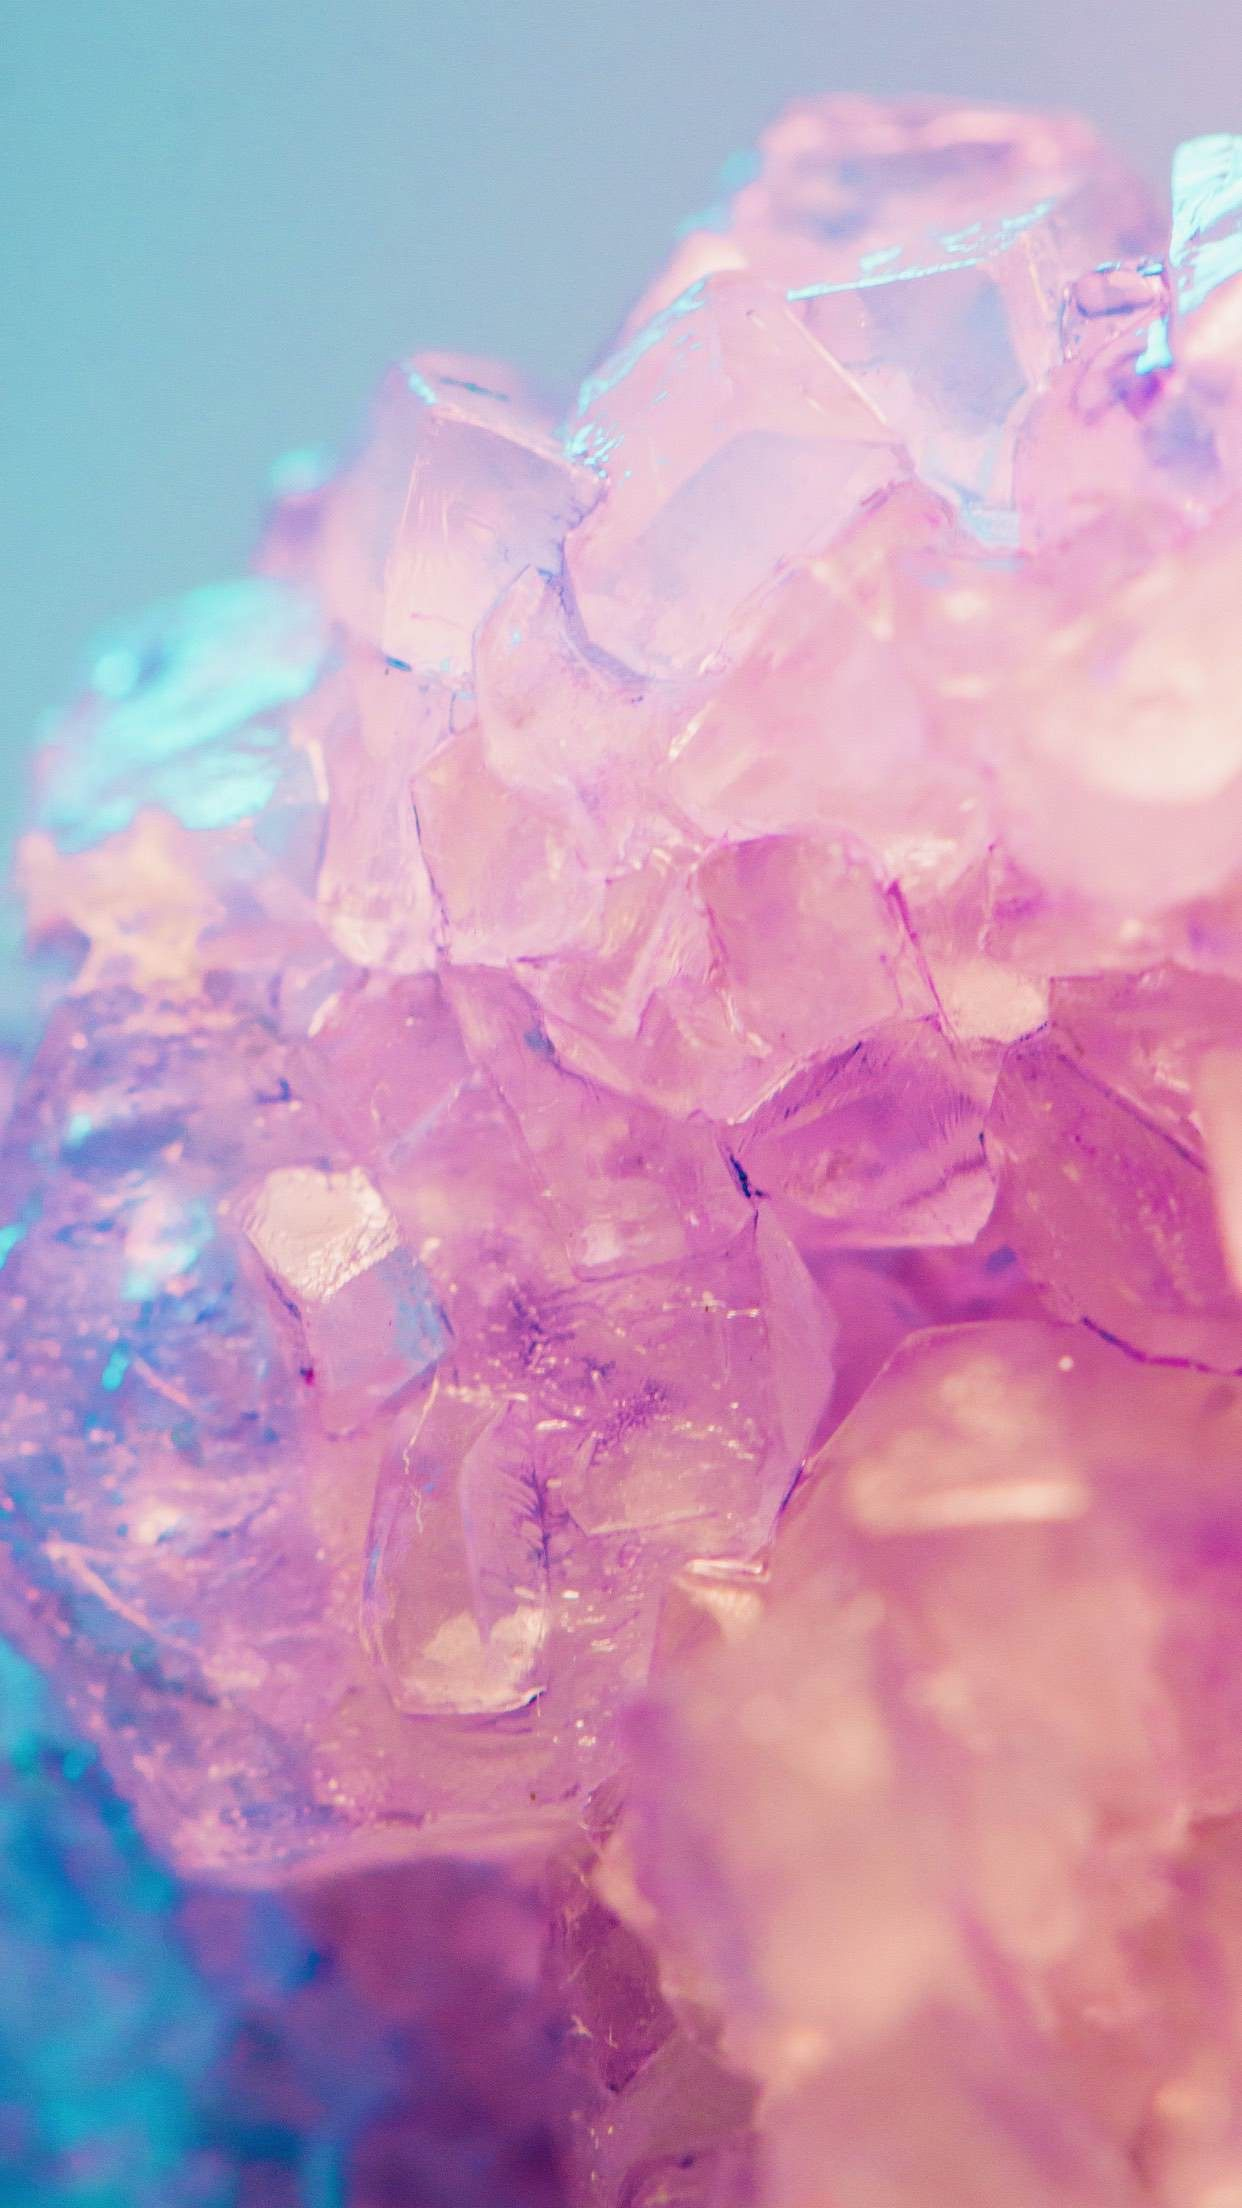 Crystals iPhone wallpaper Wallpapers in 2019 Crystal